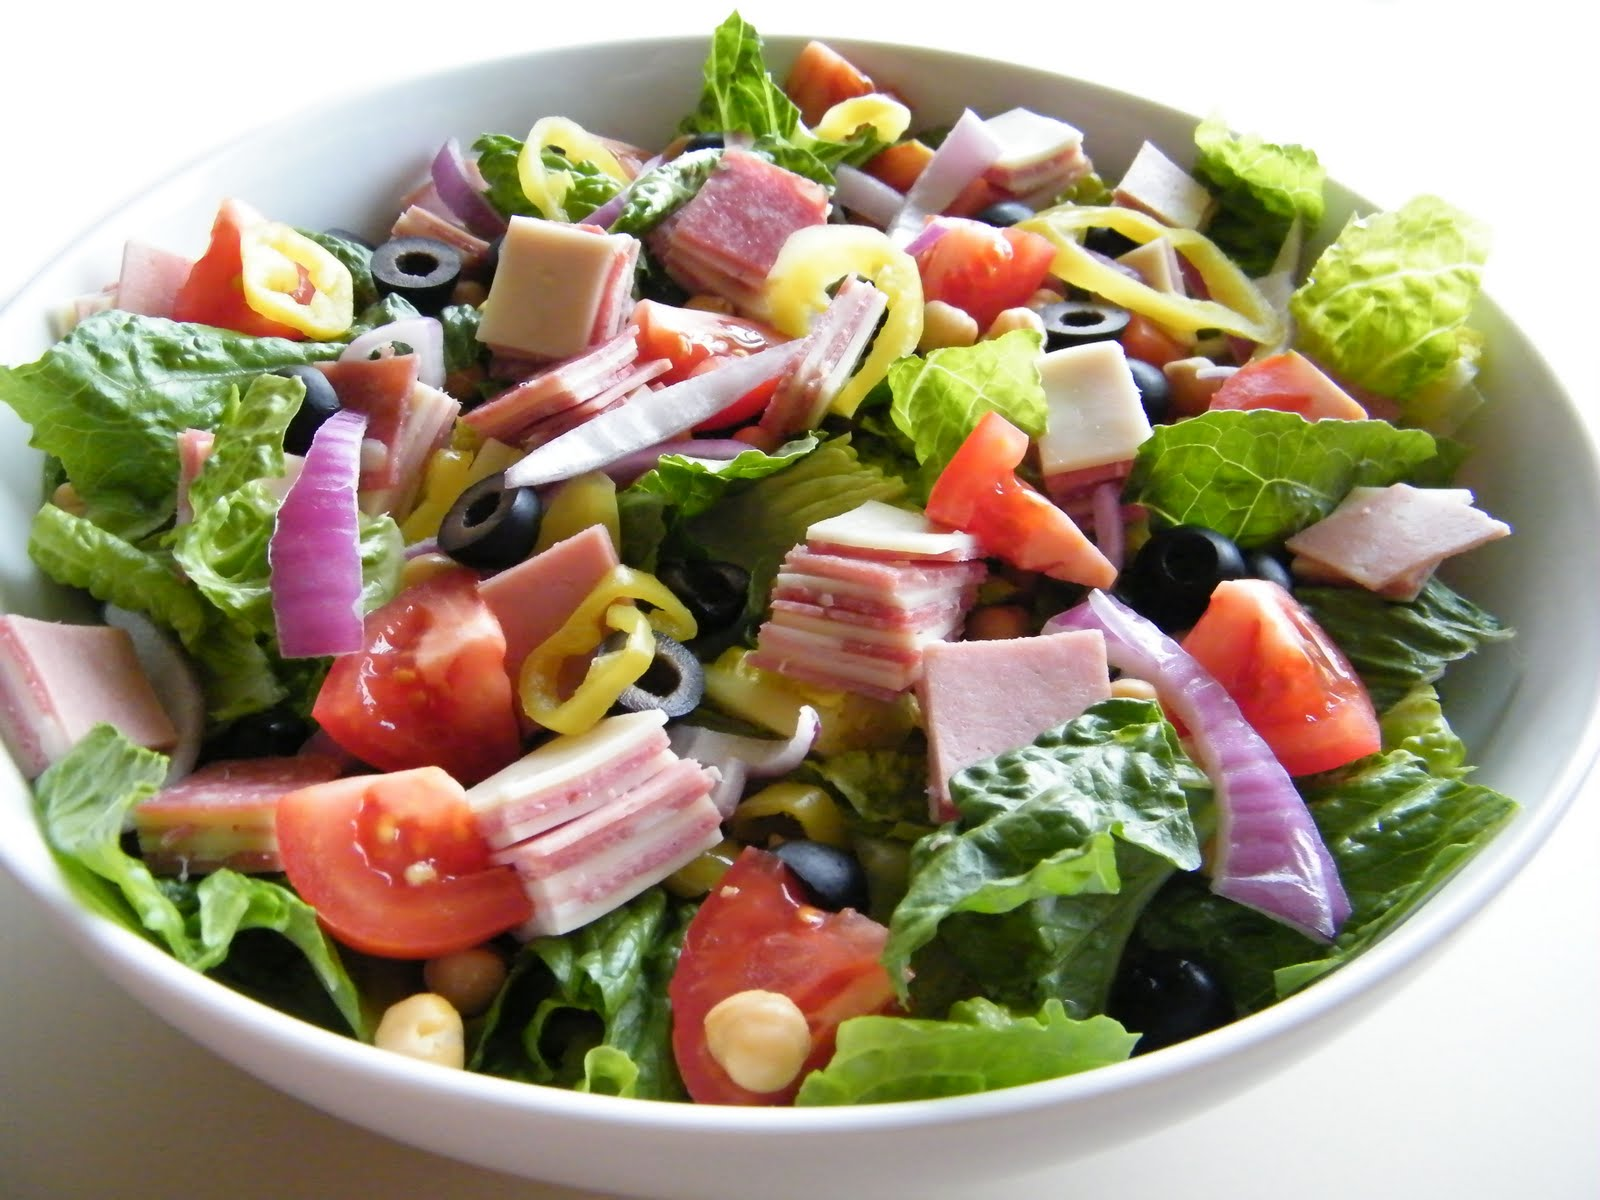 One of my favorite salads to eat in the summer is an antipasto salad.